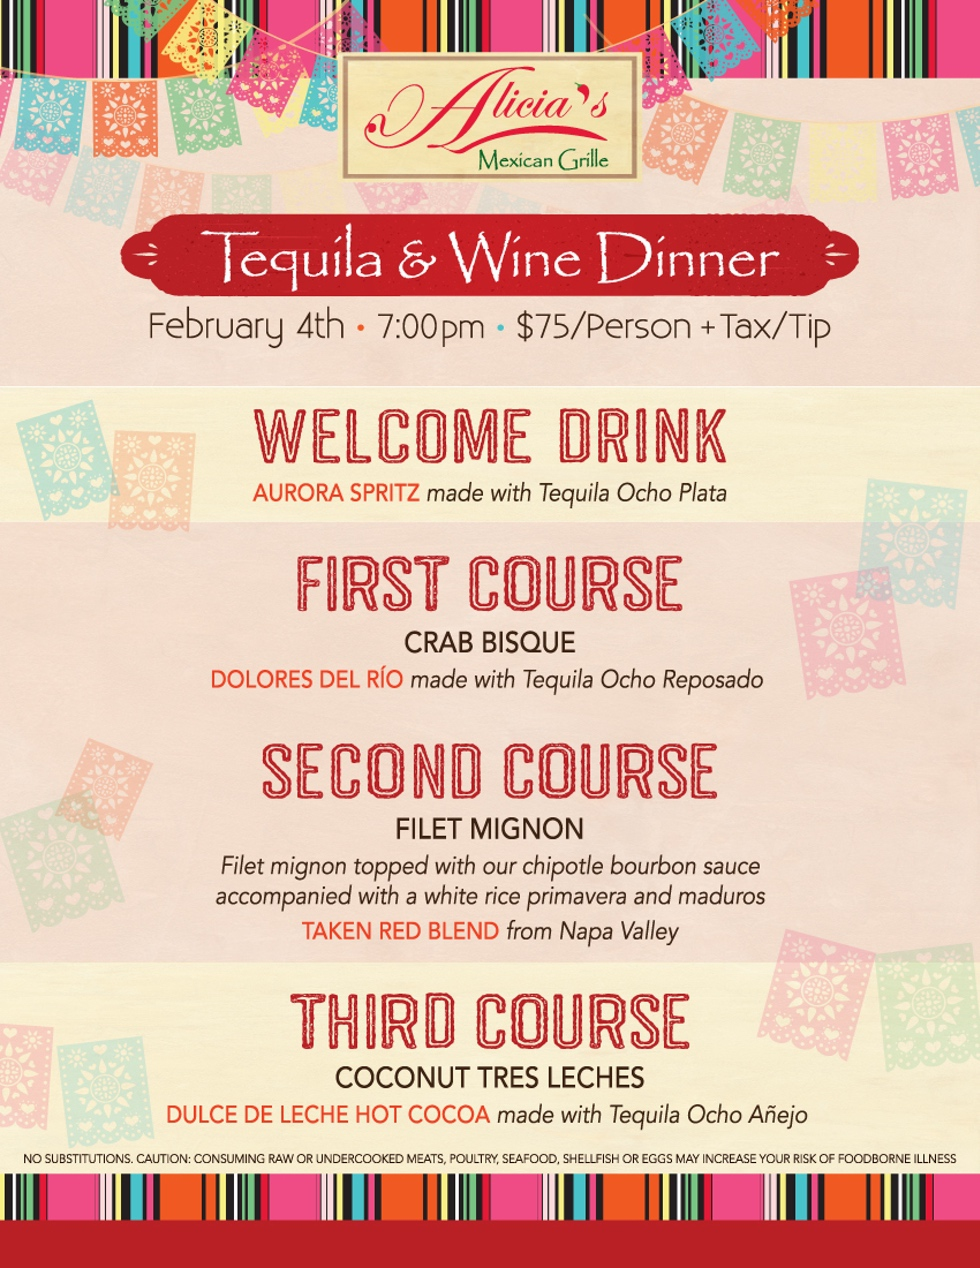 Alicia's Tequila Dinner at Spring on February 4th